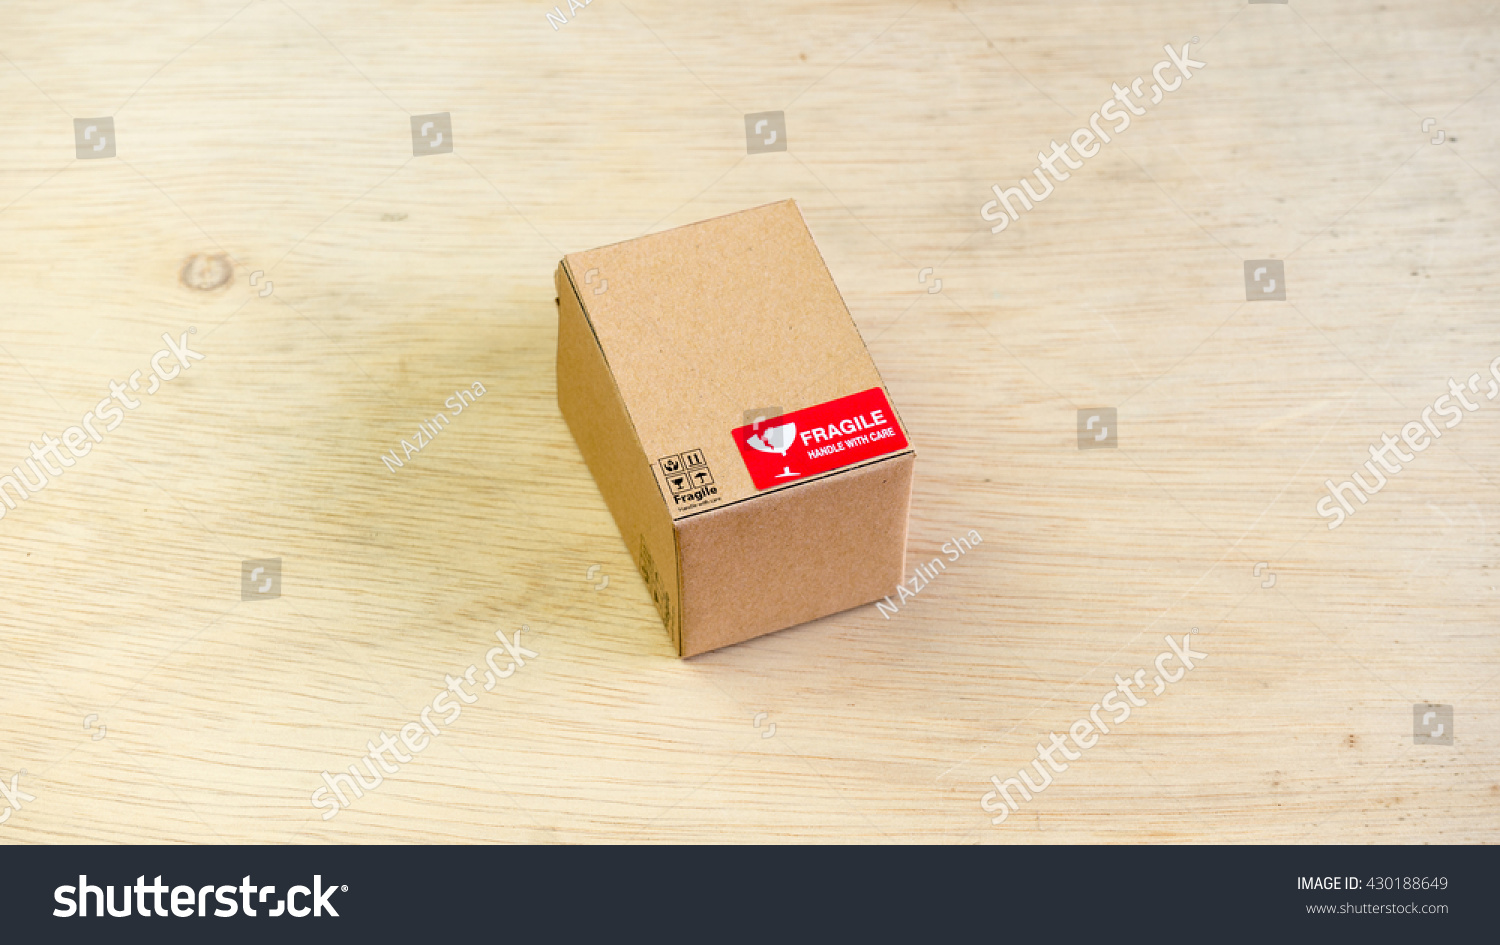 Cardboard boxes fragile wording symbol on stock photo 430188649 cardboard boxes with fragile wording symbol on wooden floor concept of handle with care courier buycottarizona